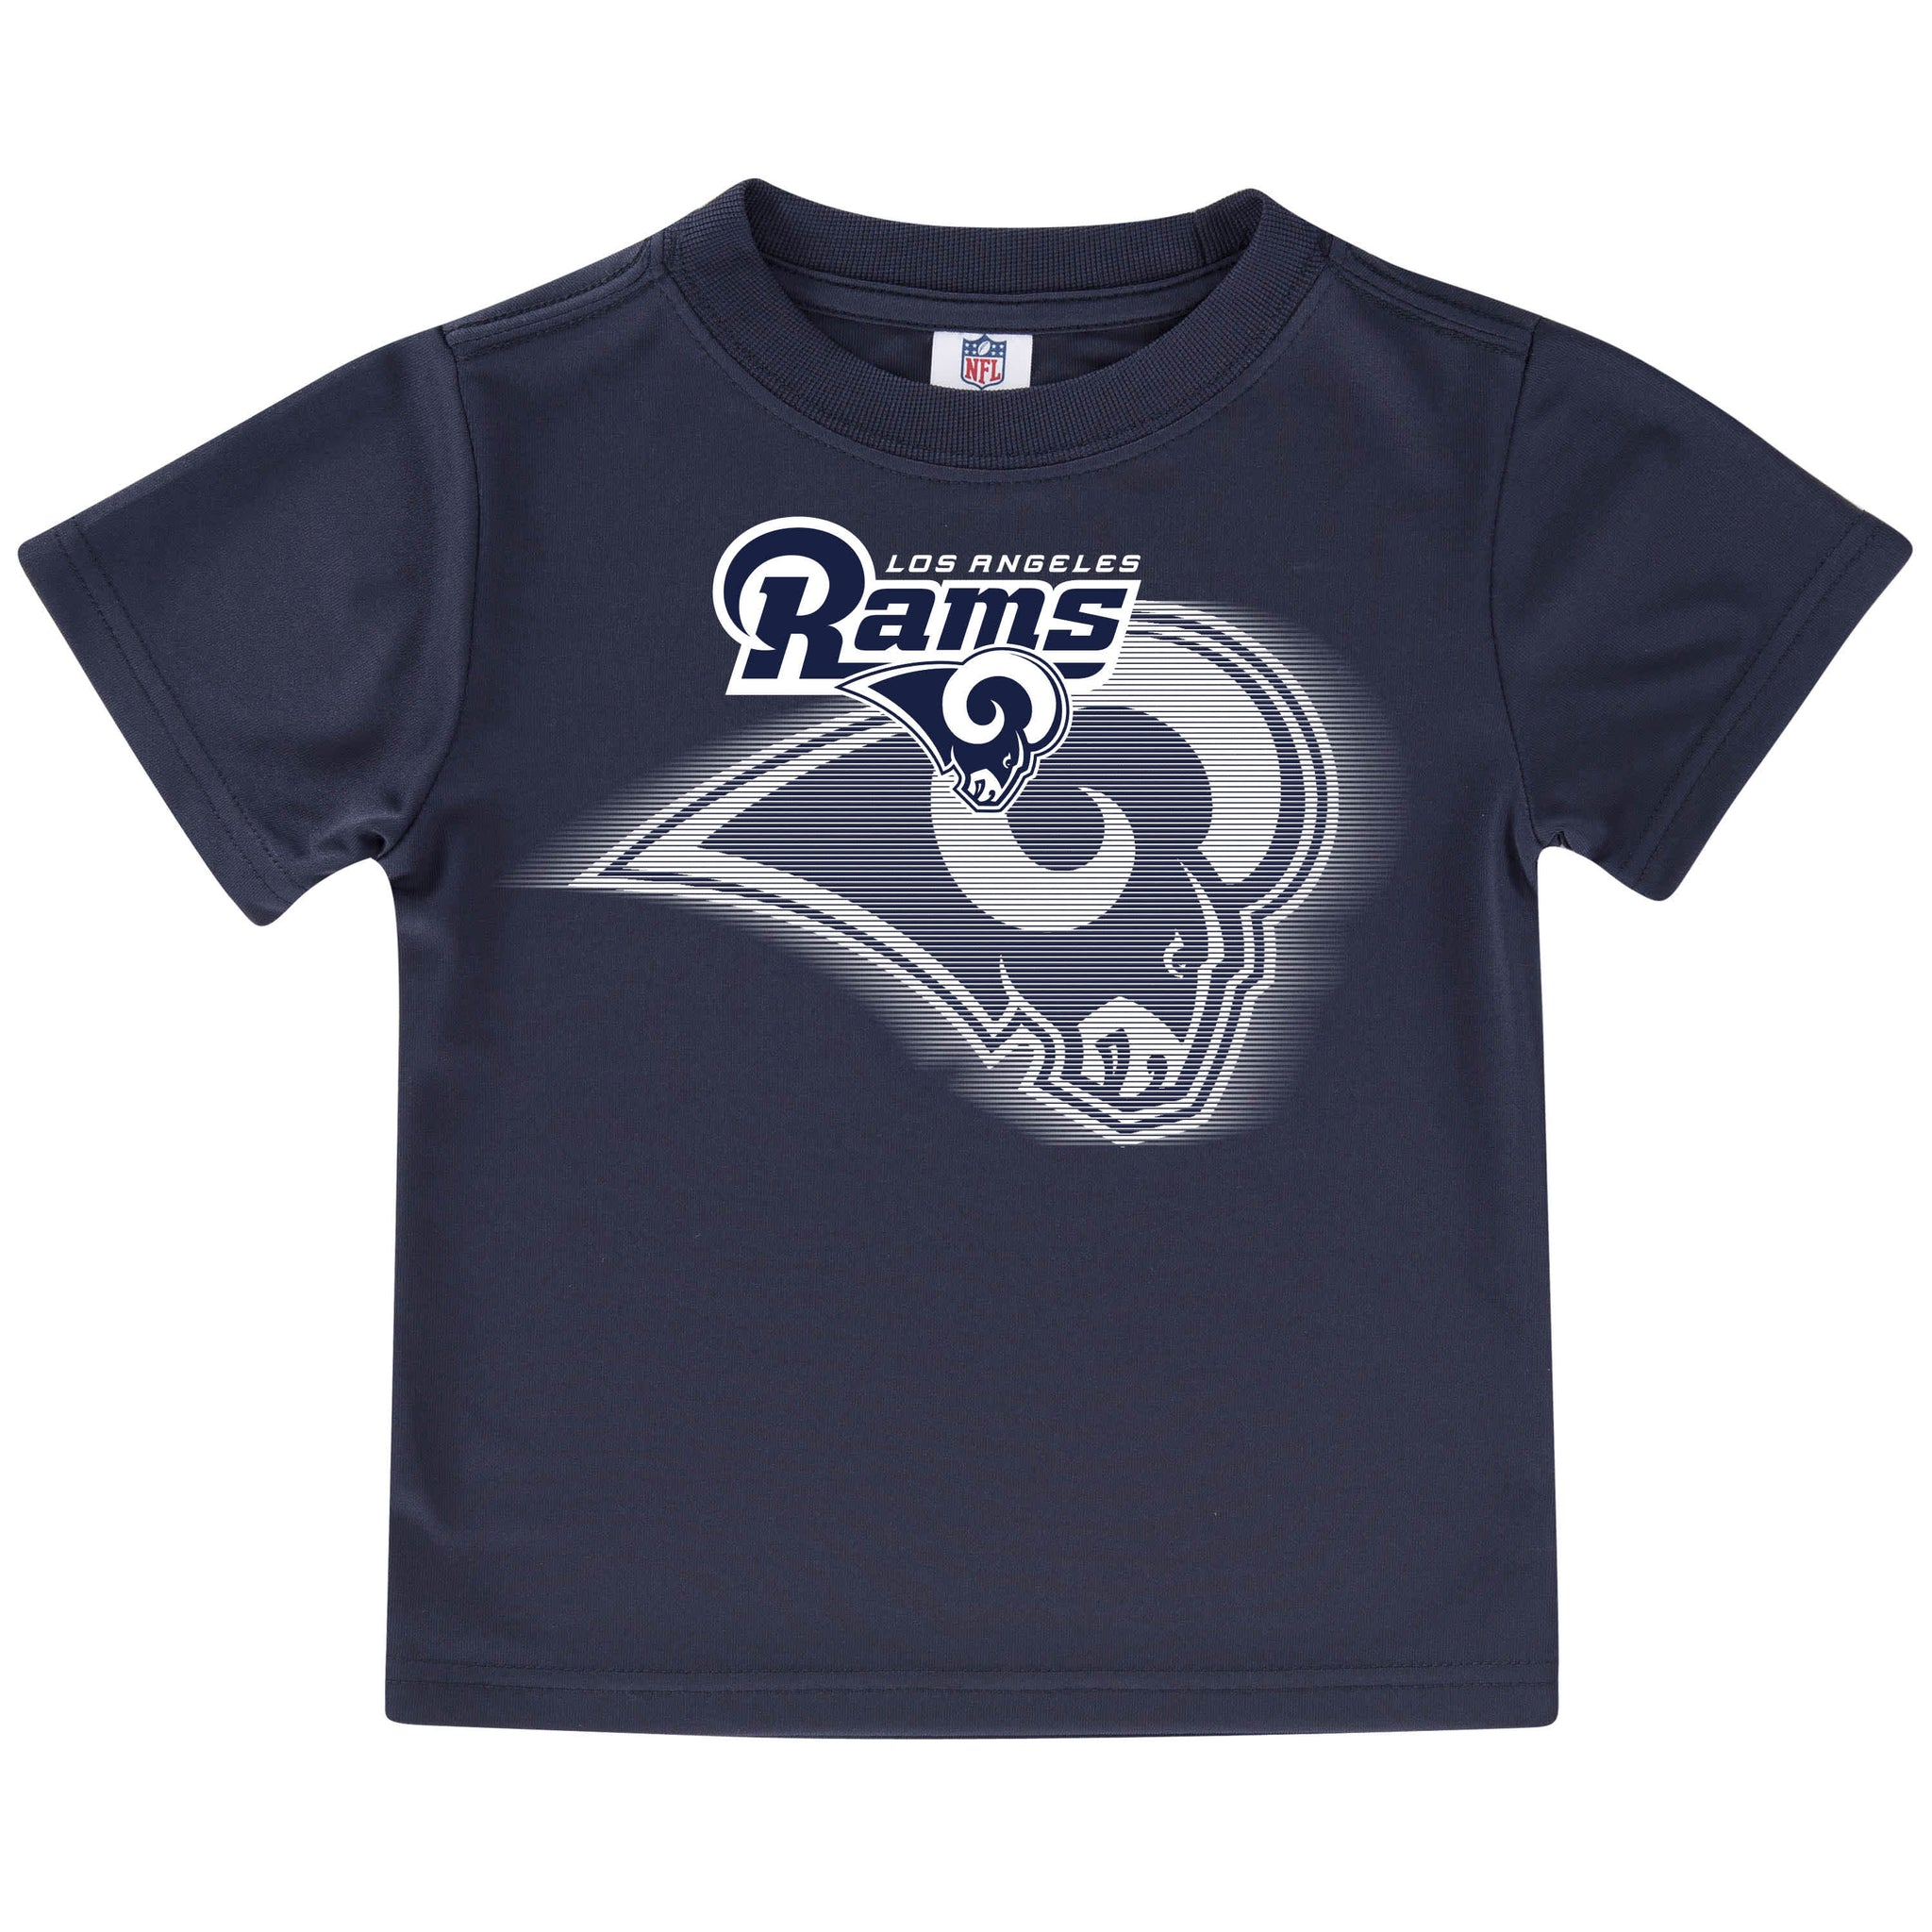 Los Angeles Rams Toddler Boys Short Sleeve Logo Tee Shirt-Gerber Childrenswear